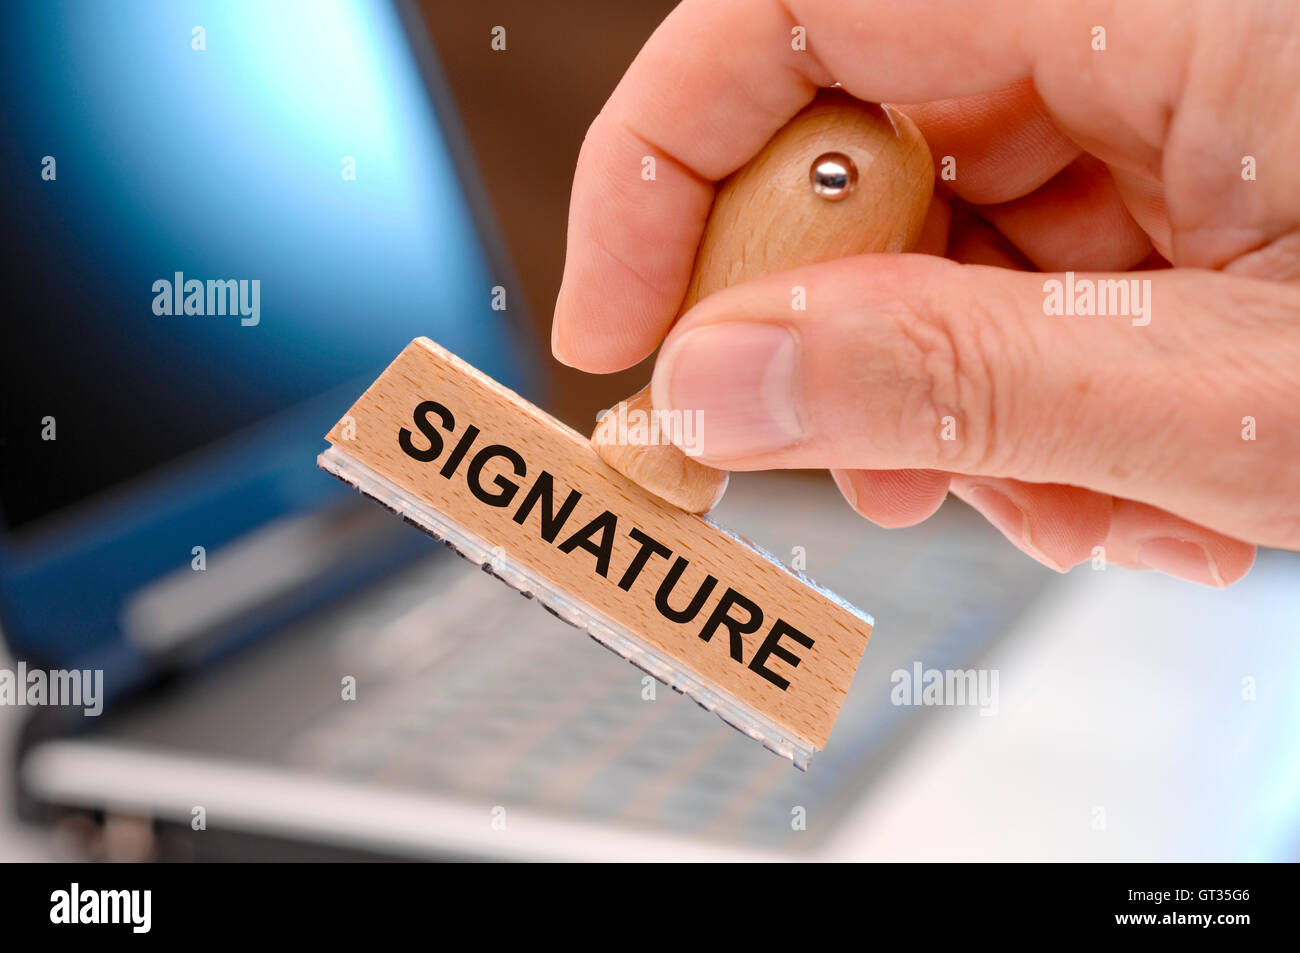 Signature printed on rubber stamp - Stock Image